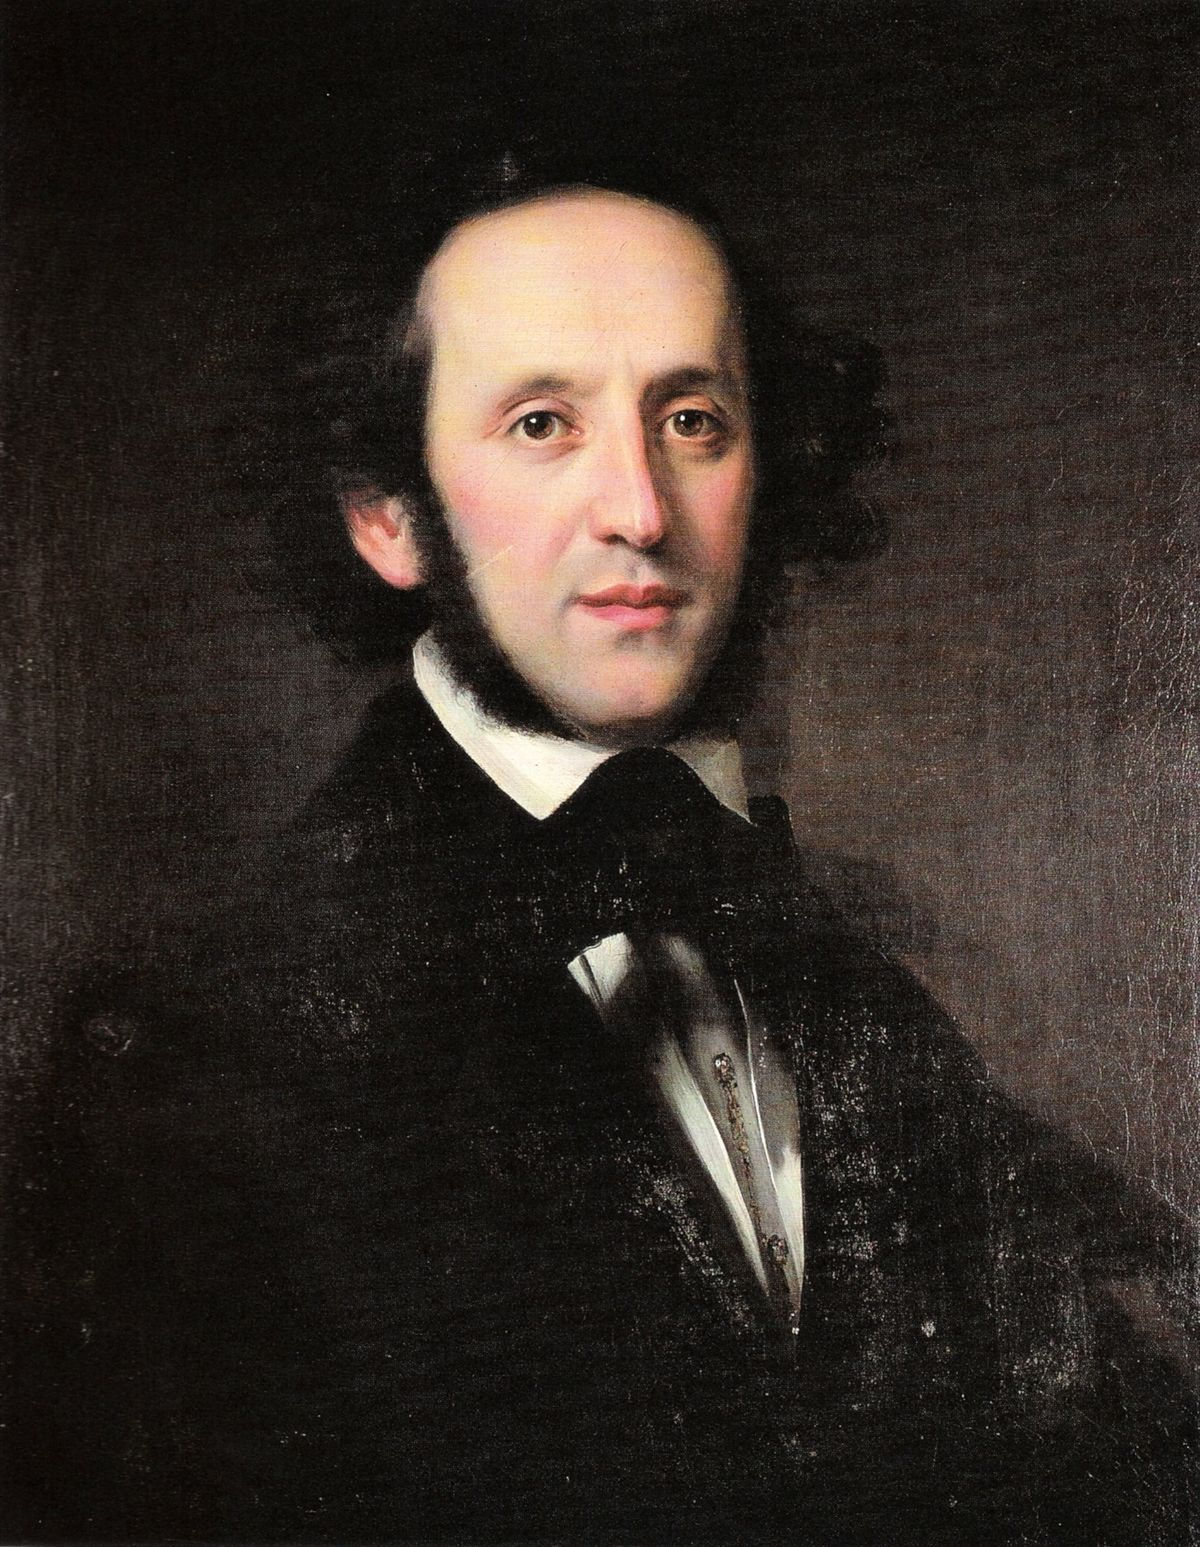 felix mendelssohn Article article the development of mendelssohn's musical and compositional skills parallels that of another aspect of his creativity: his skills in drawing and painting, which, like music, became a means of expression on which he relied throughout his life.